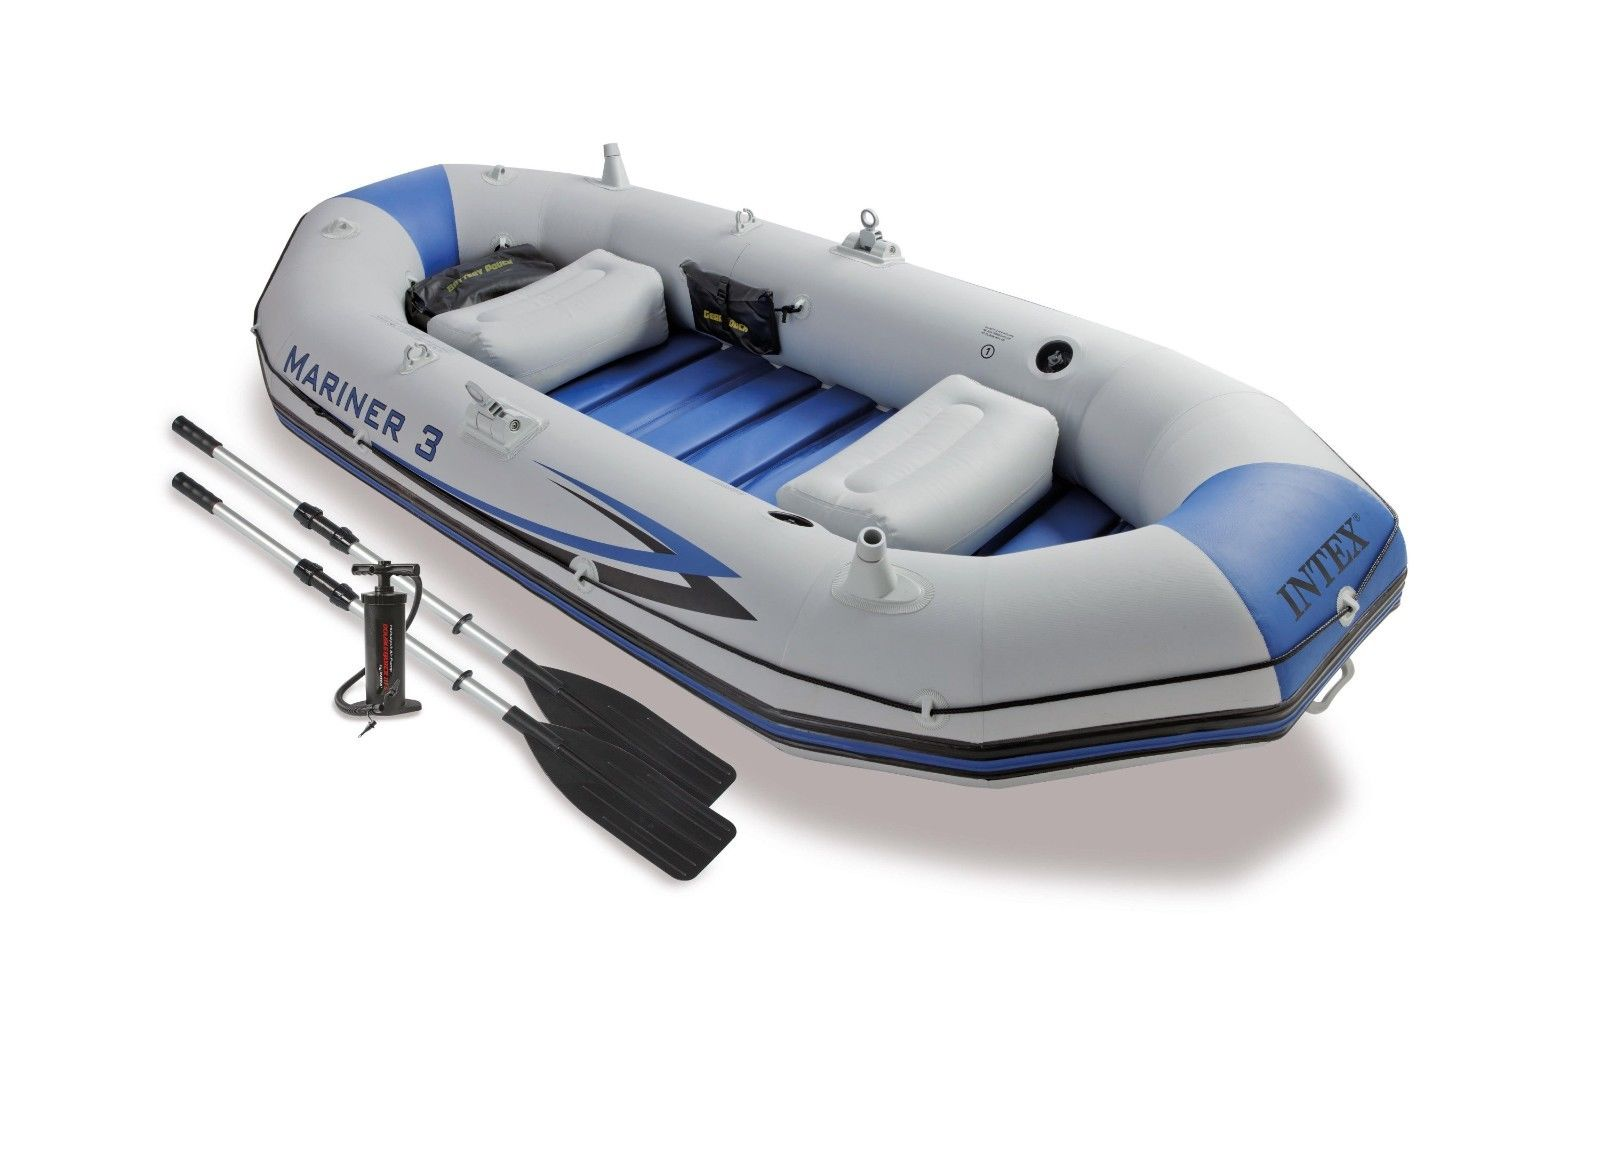 Details about Intex Mariner 3 Inflatable Raft River Lake Dinghy Boat & Oars  Set 68373EP